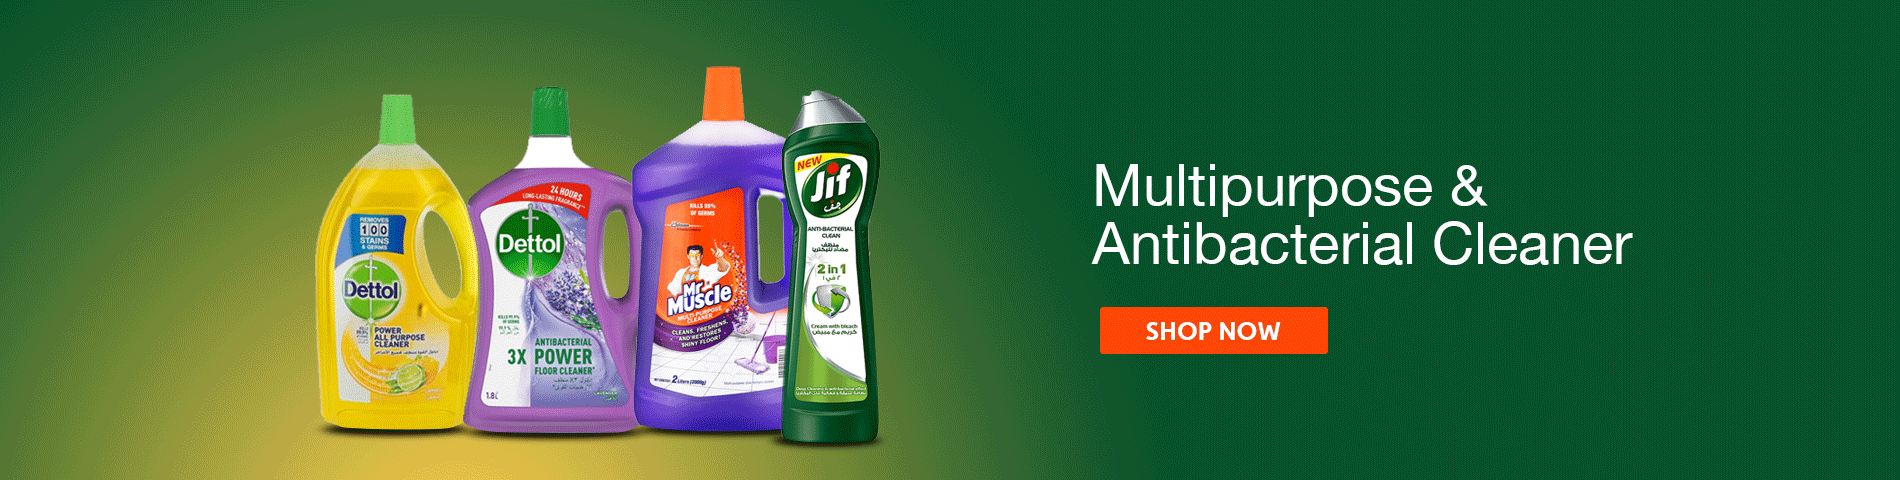 Multipurpose & Antibacterial Cleaners